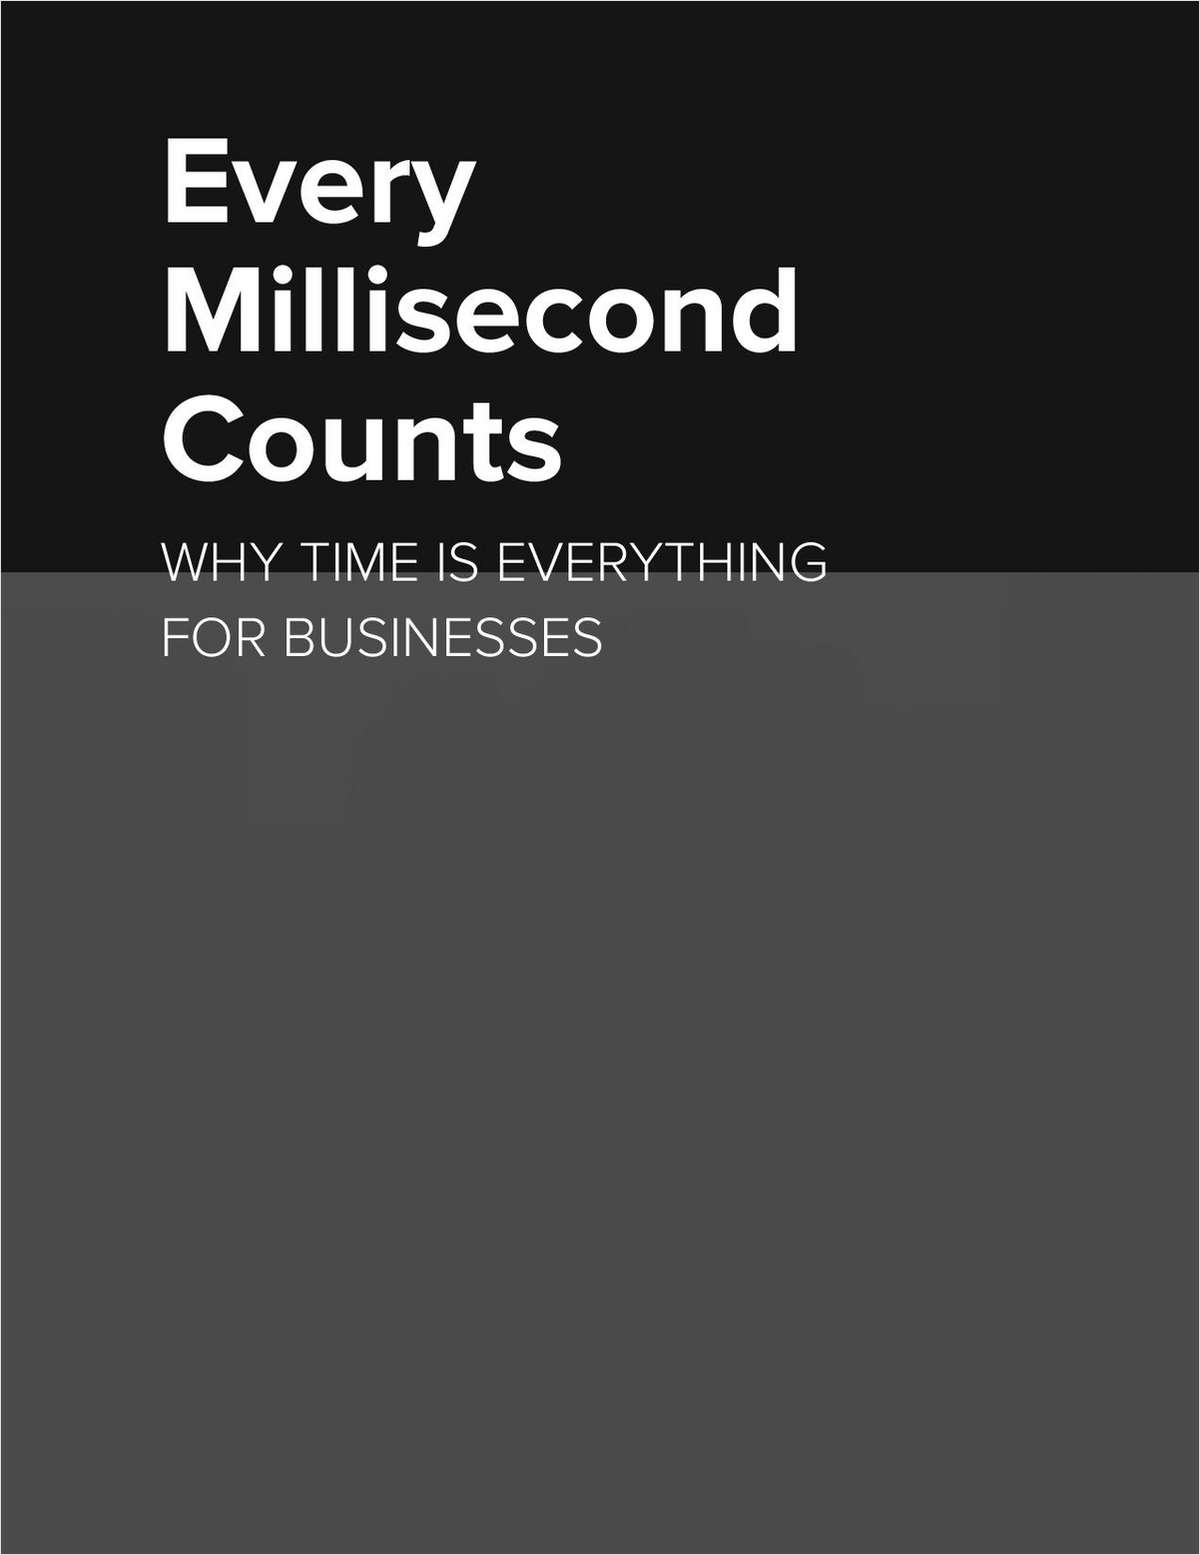 Every Millisecond Counts: Why Time is Everything for Business